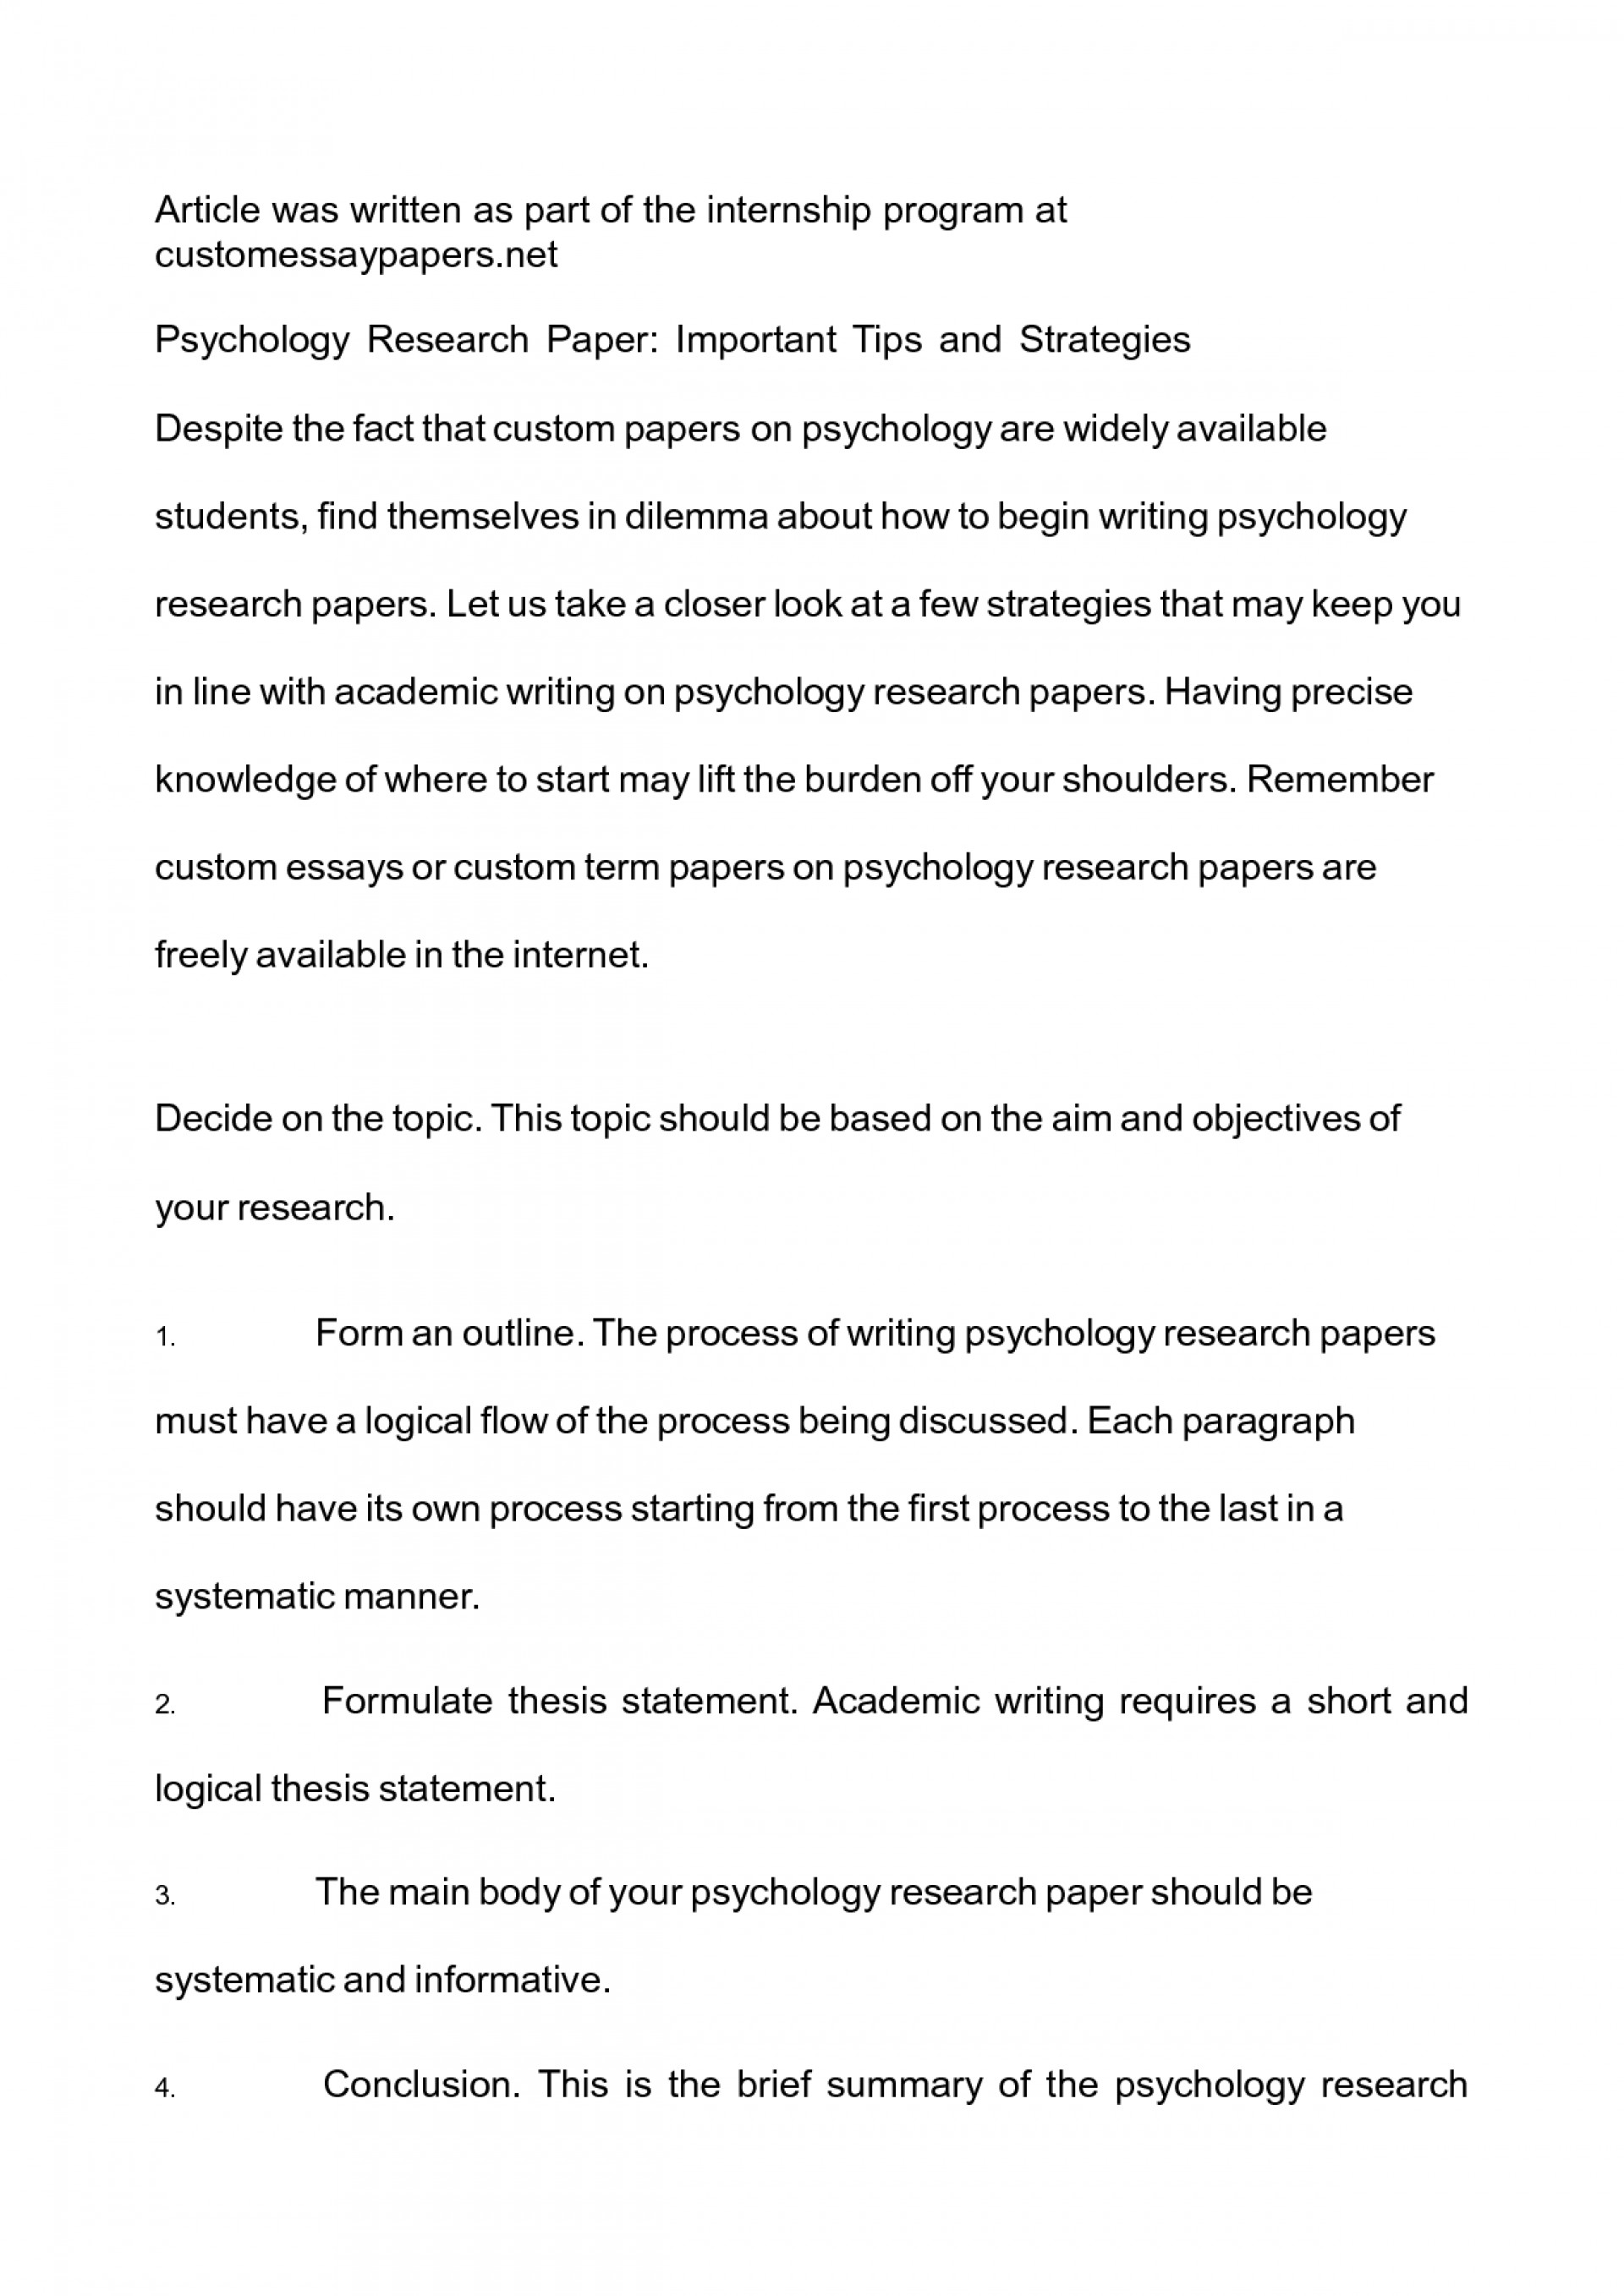 007 Psychology Research Paper Writing Services College Papers Stirring Written 1920